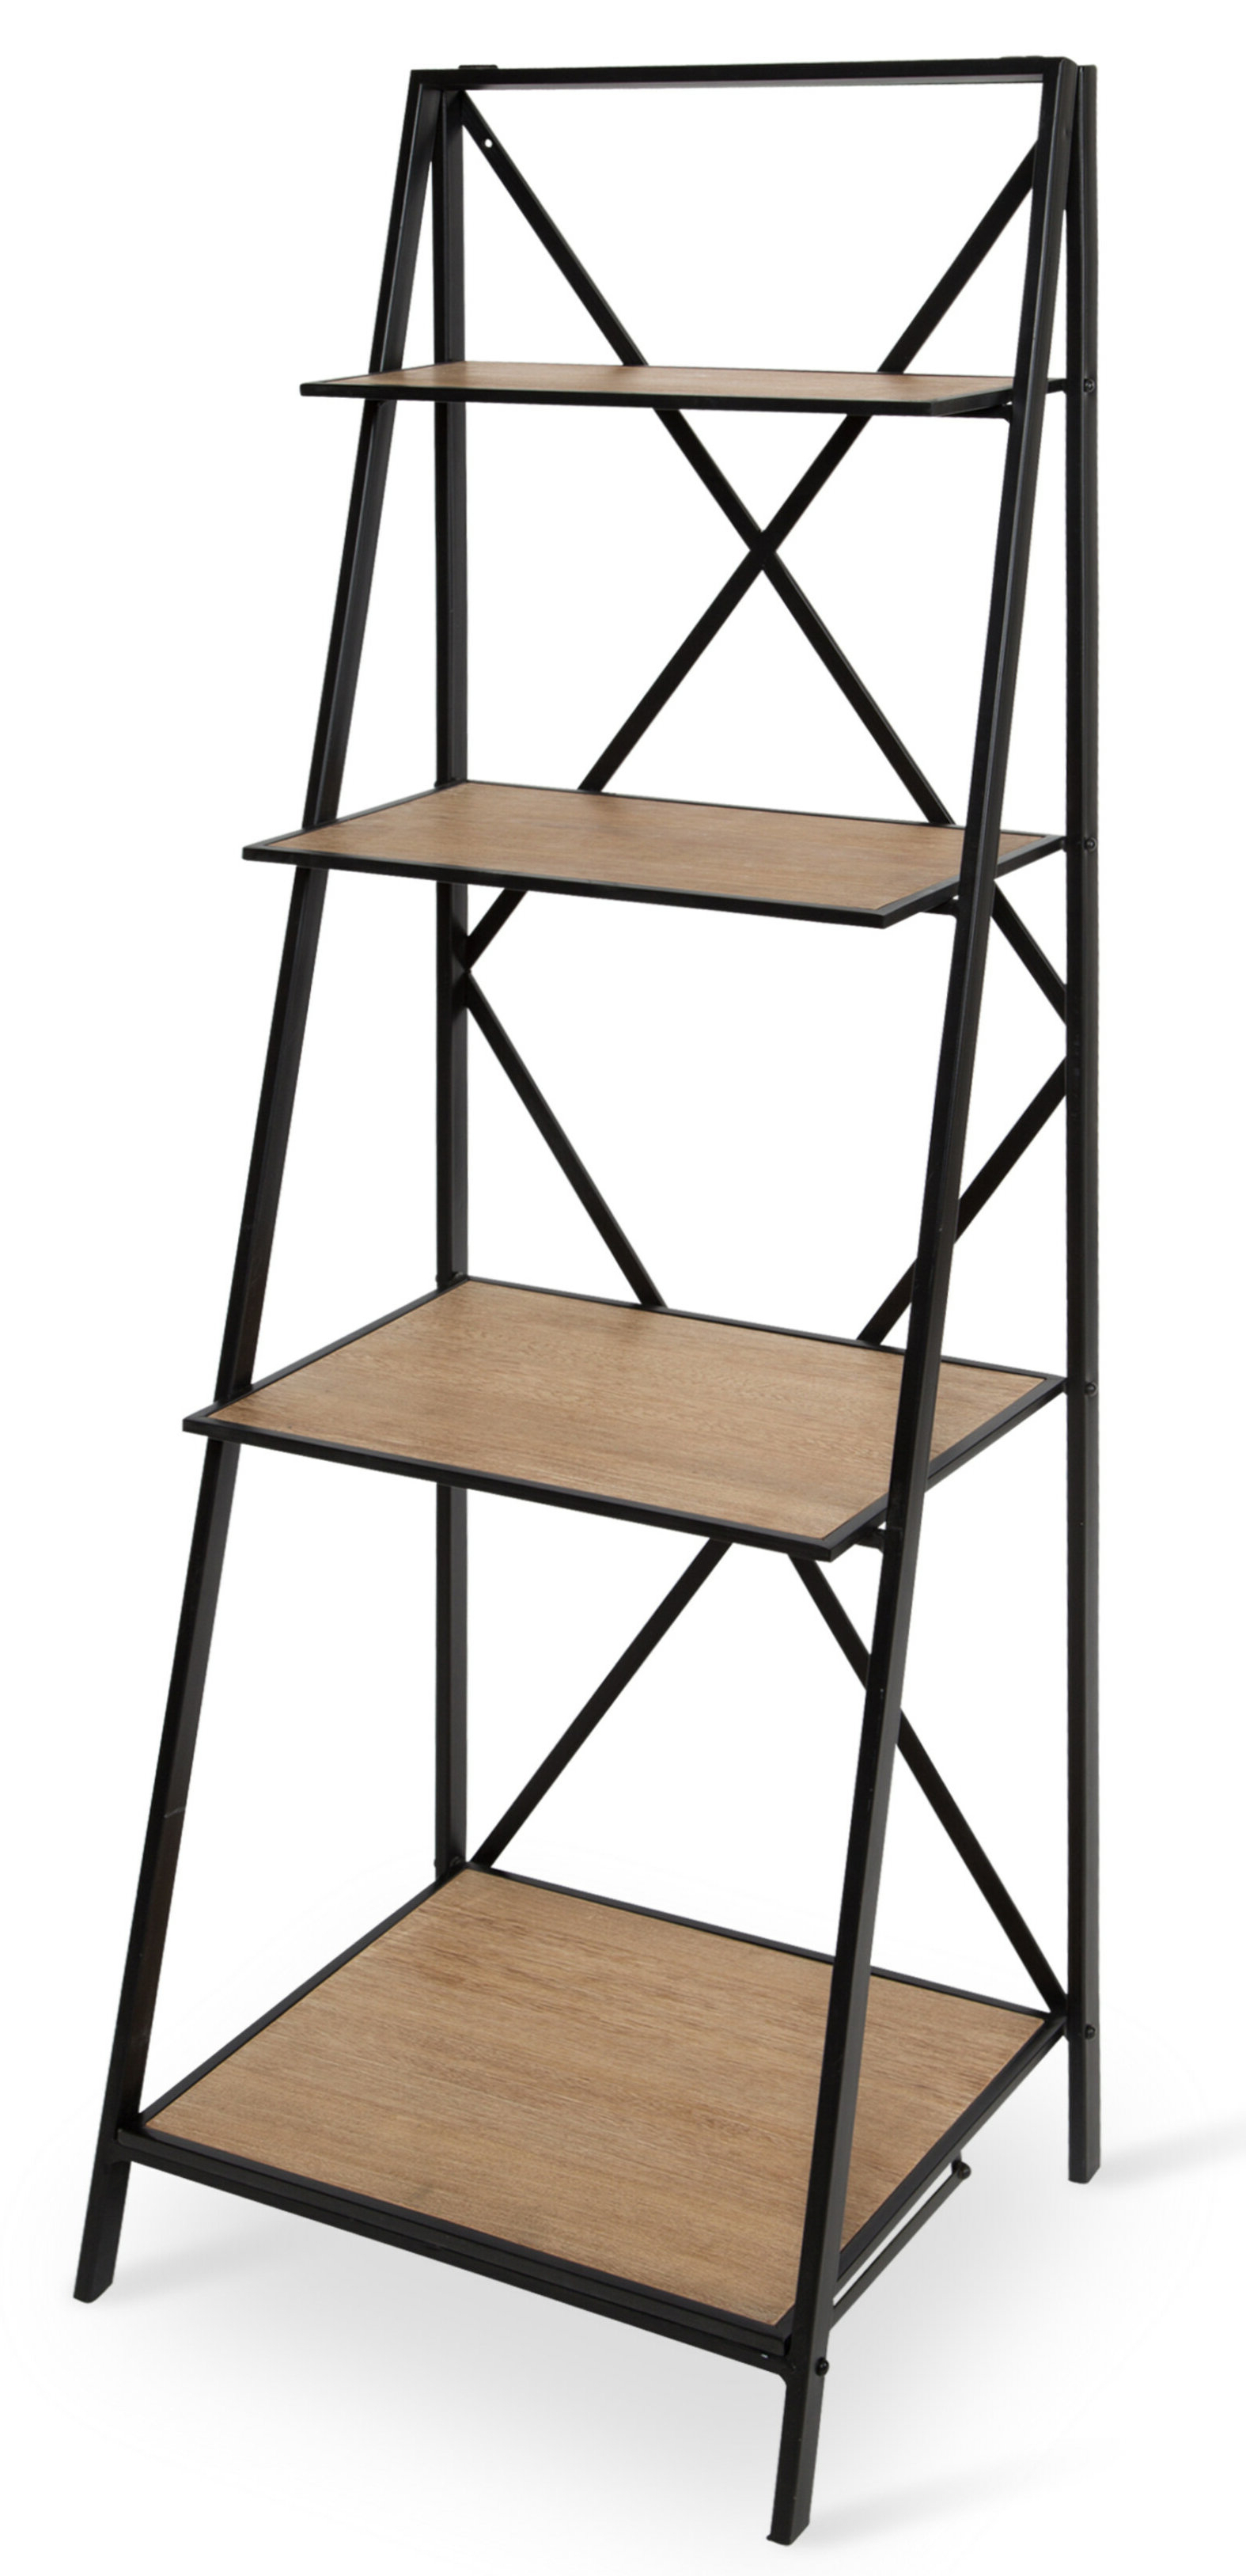 Ironton Farmhouse 4 Tiered Foldable Free Standing Wood And Metal Etagere  Bookcase Inside Most Up To Date Rech 4 Tier Etagere Bookcases (View 5 of 20)